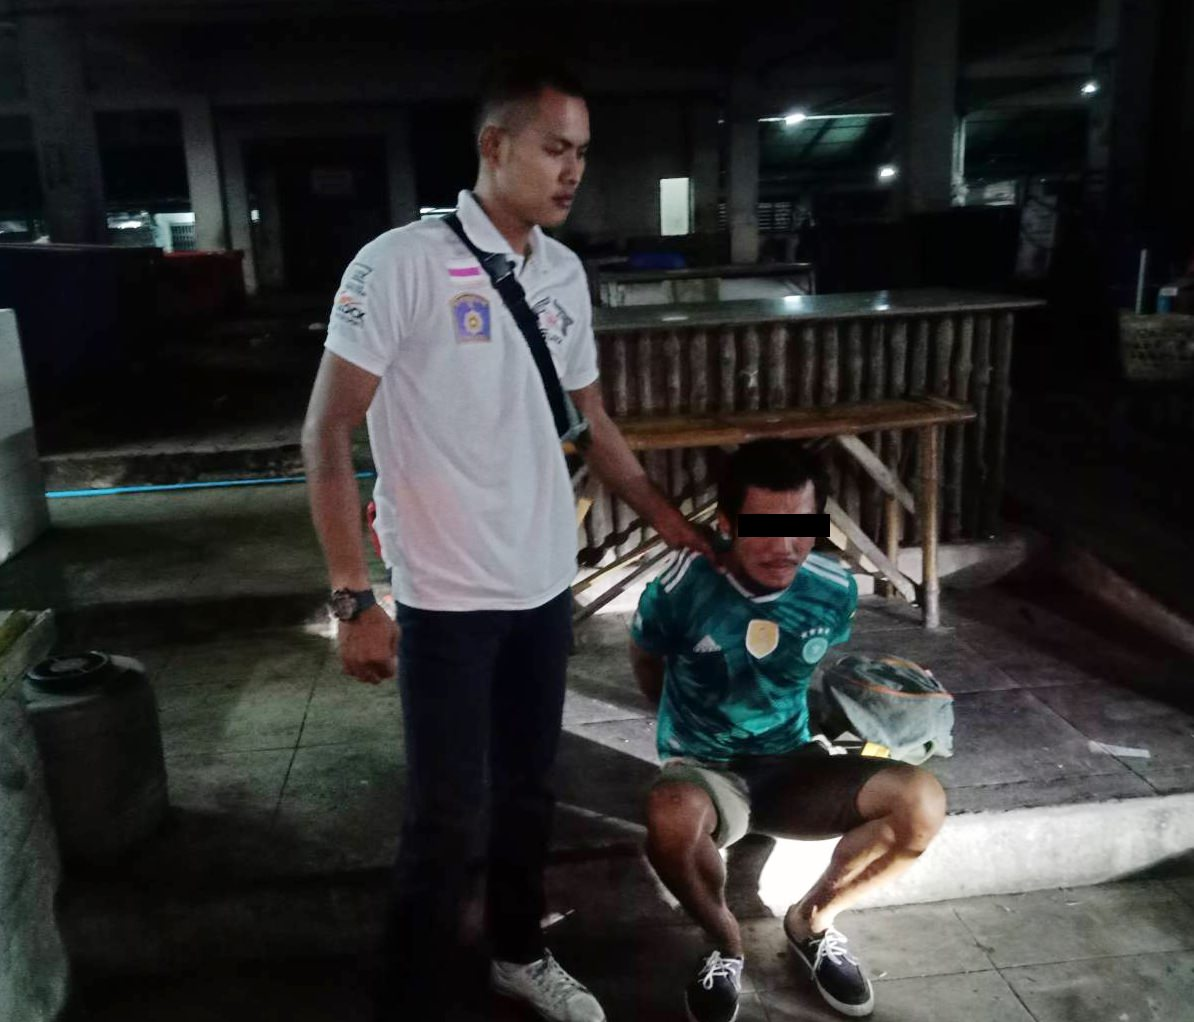 Police arrested one of the two alleged attackers, identified only as Pong, when a homeless man was bludgeoned with a glass bottle after he refused a request to bum a cigarette off him.